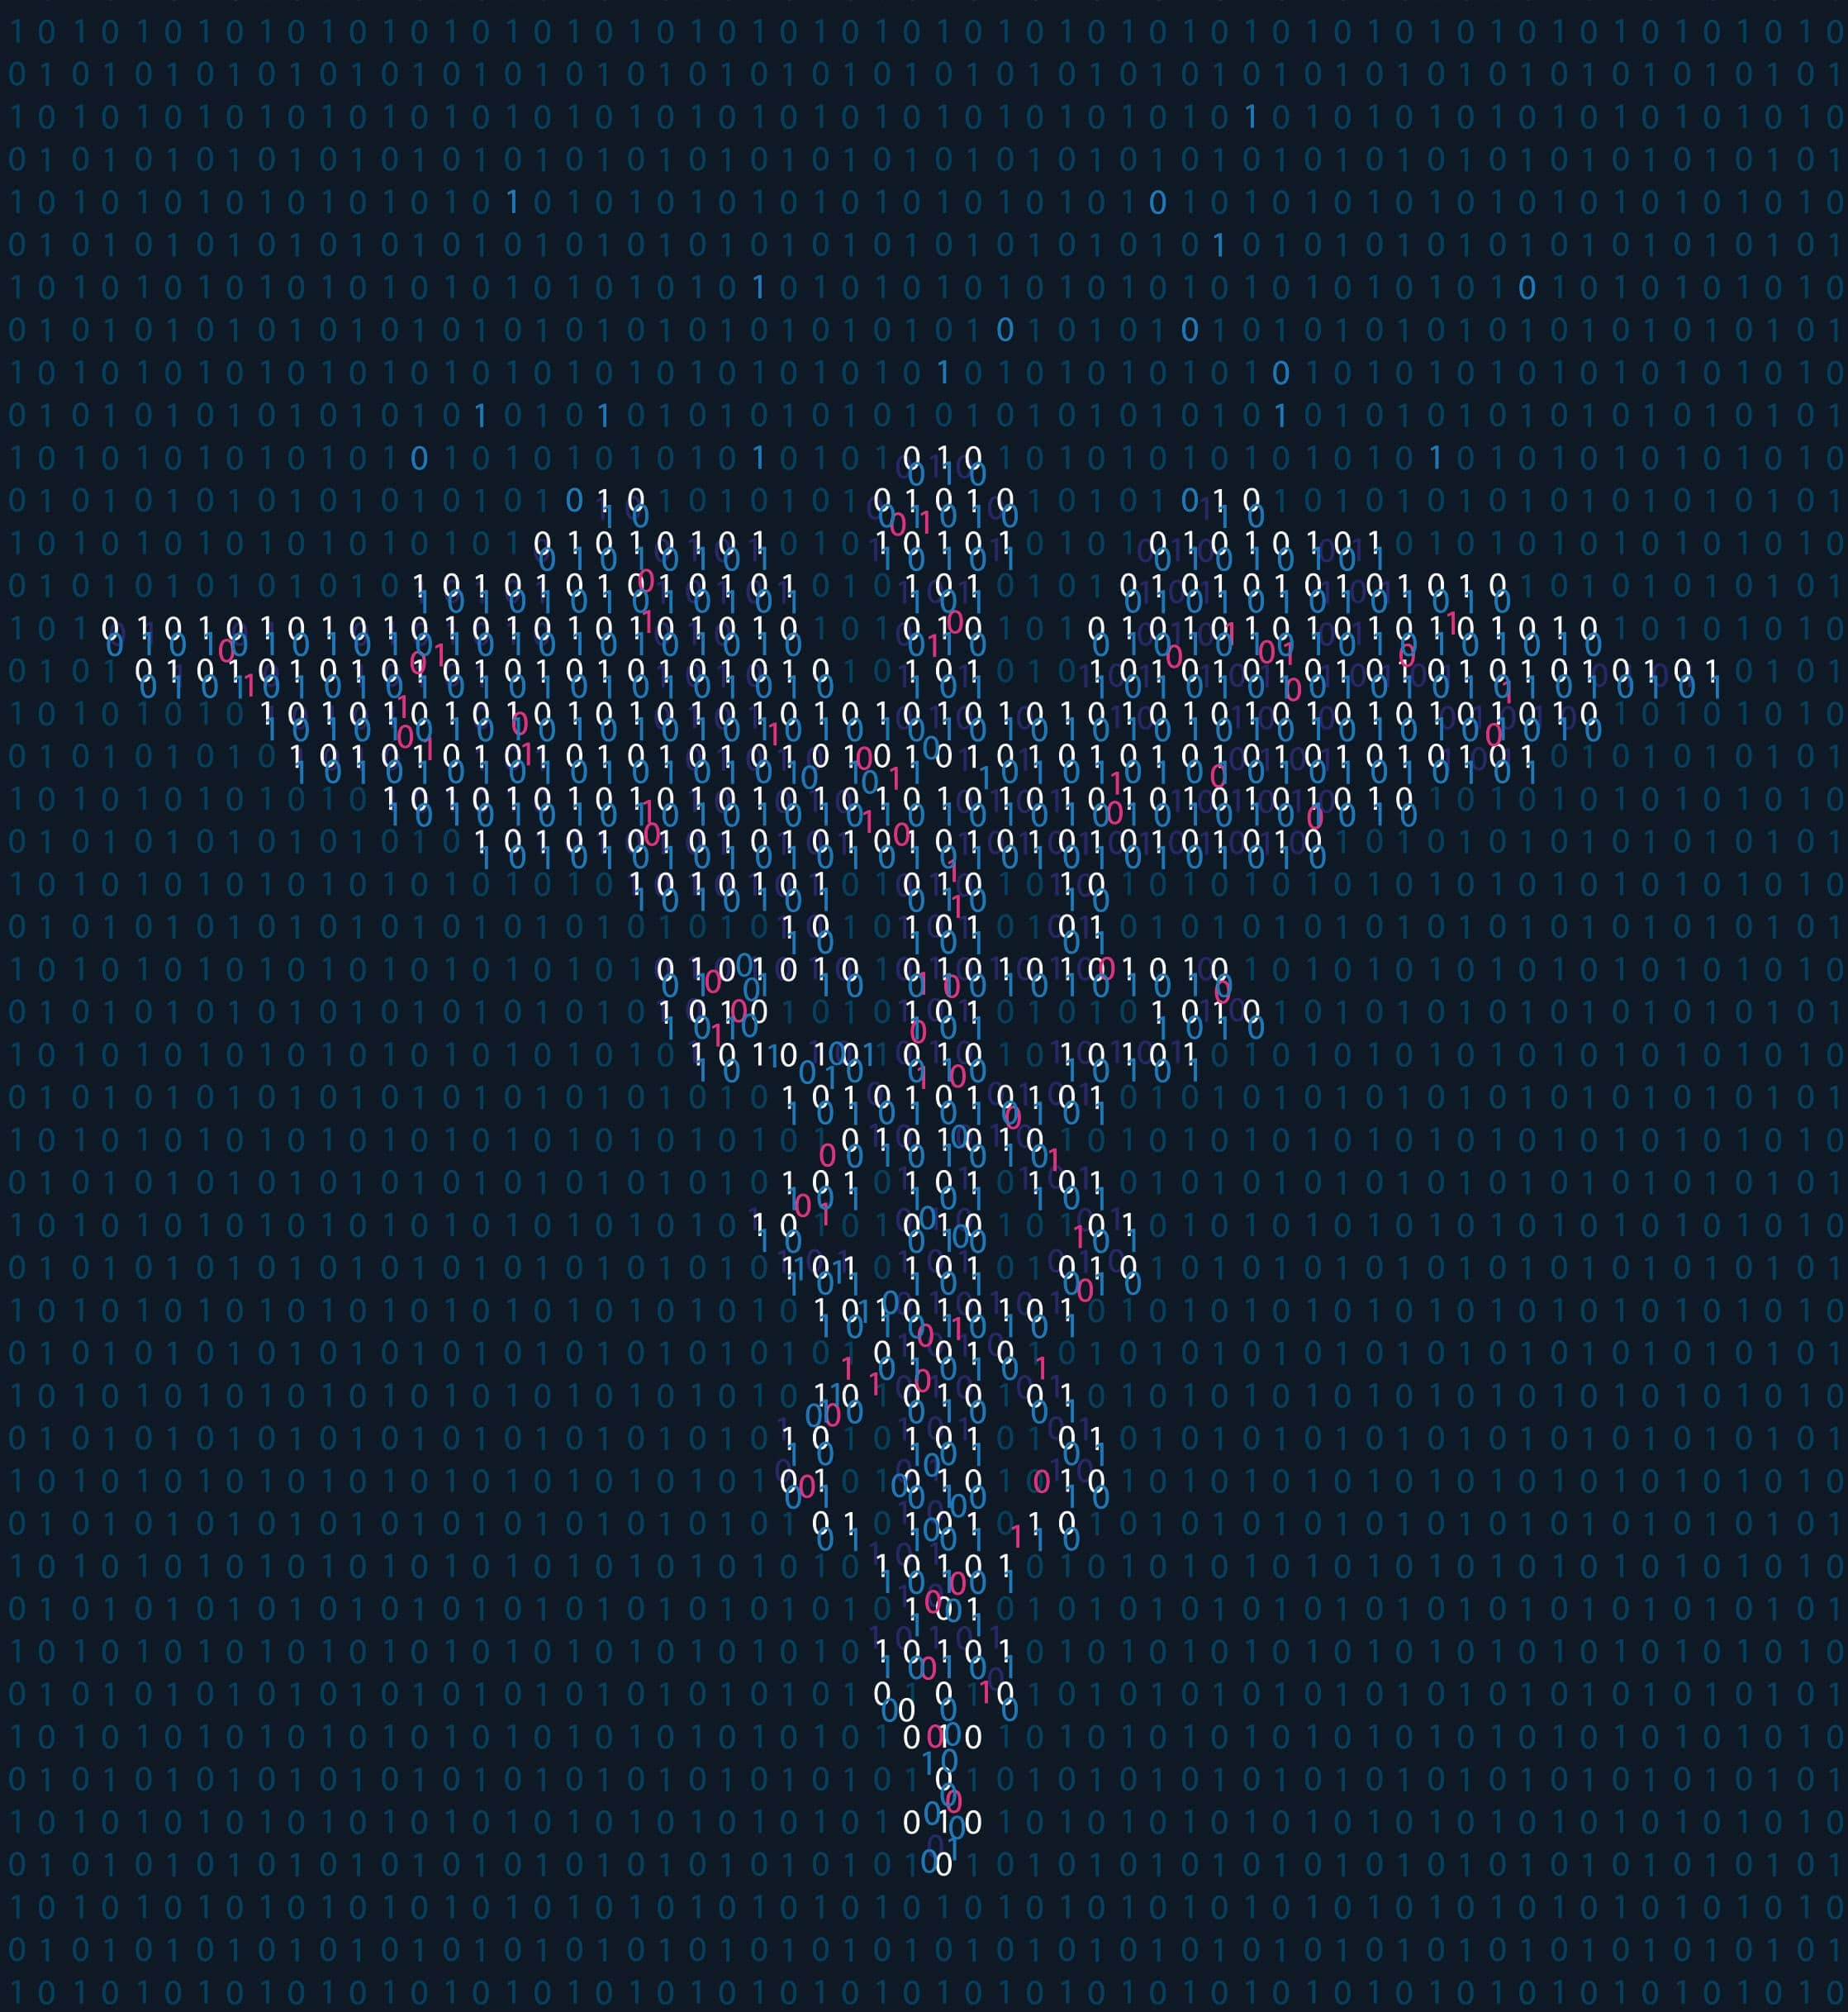 Data Will Help Find New Cures